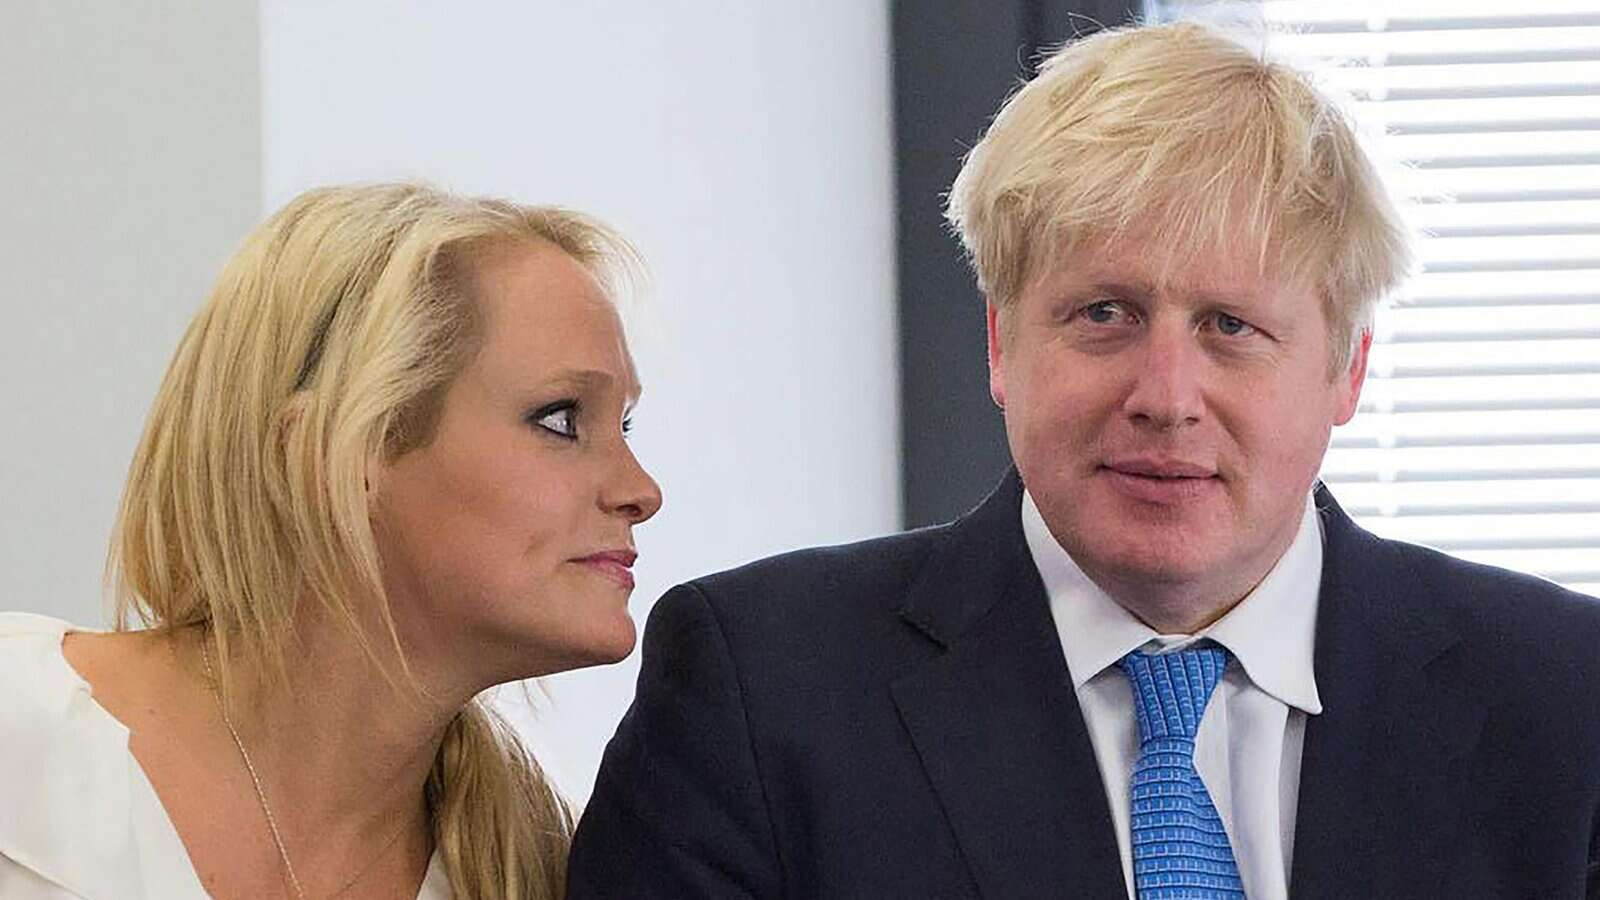 New allegations have come out claiming Boris Johnson cheated on his wife with an American woman. Find out more about the alleged affair.